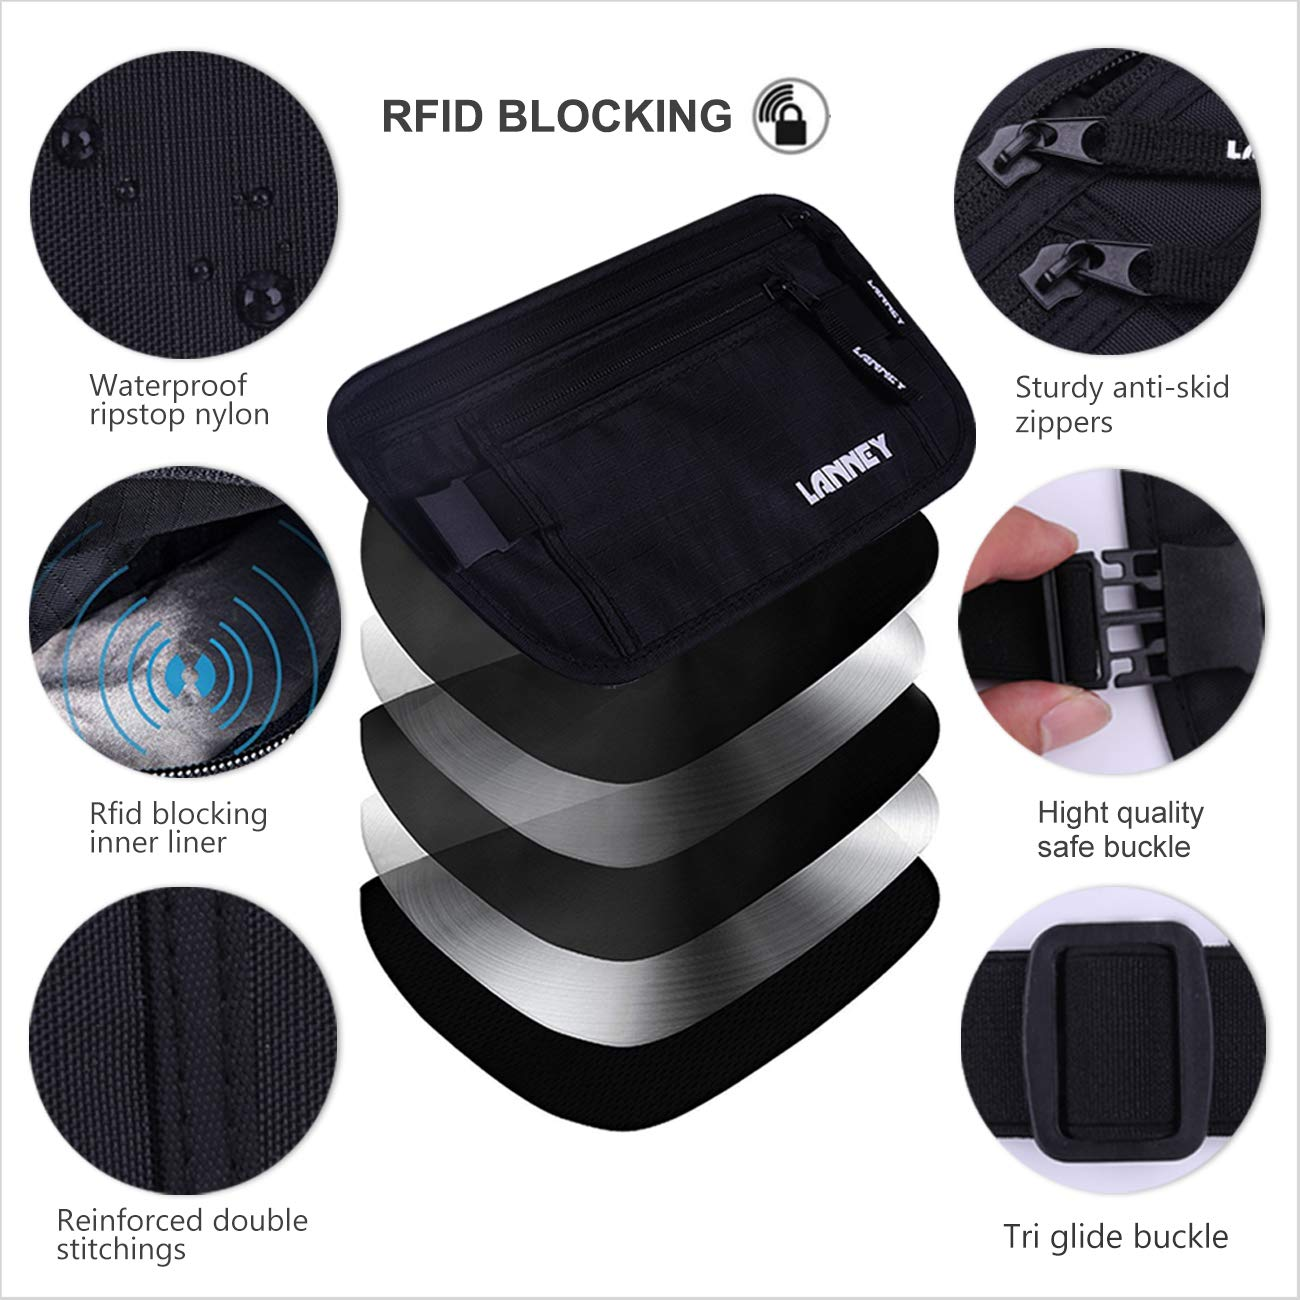 Travel Money Belt Blocking Wallet For Credit Card & Passport Holder With 2pcs RFID Sleeves (Black) by LANNEY (Image #2)